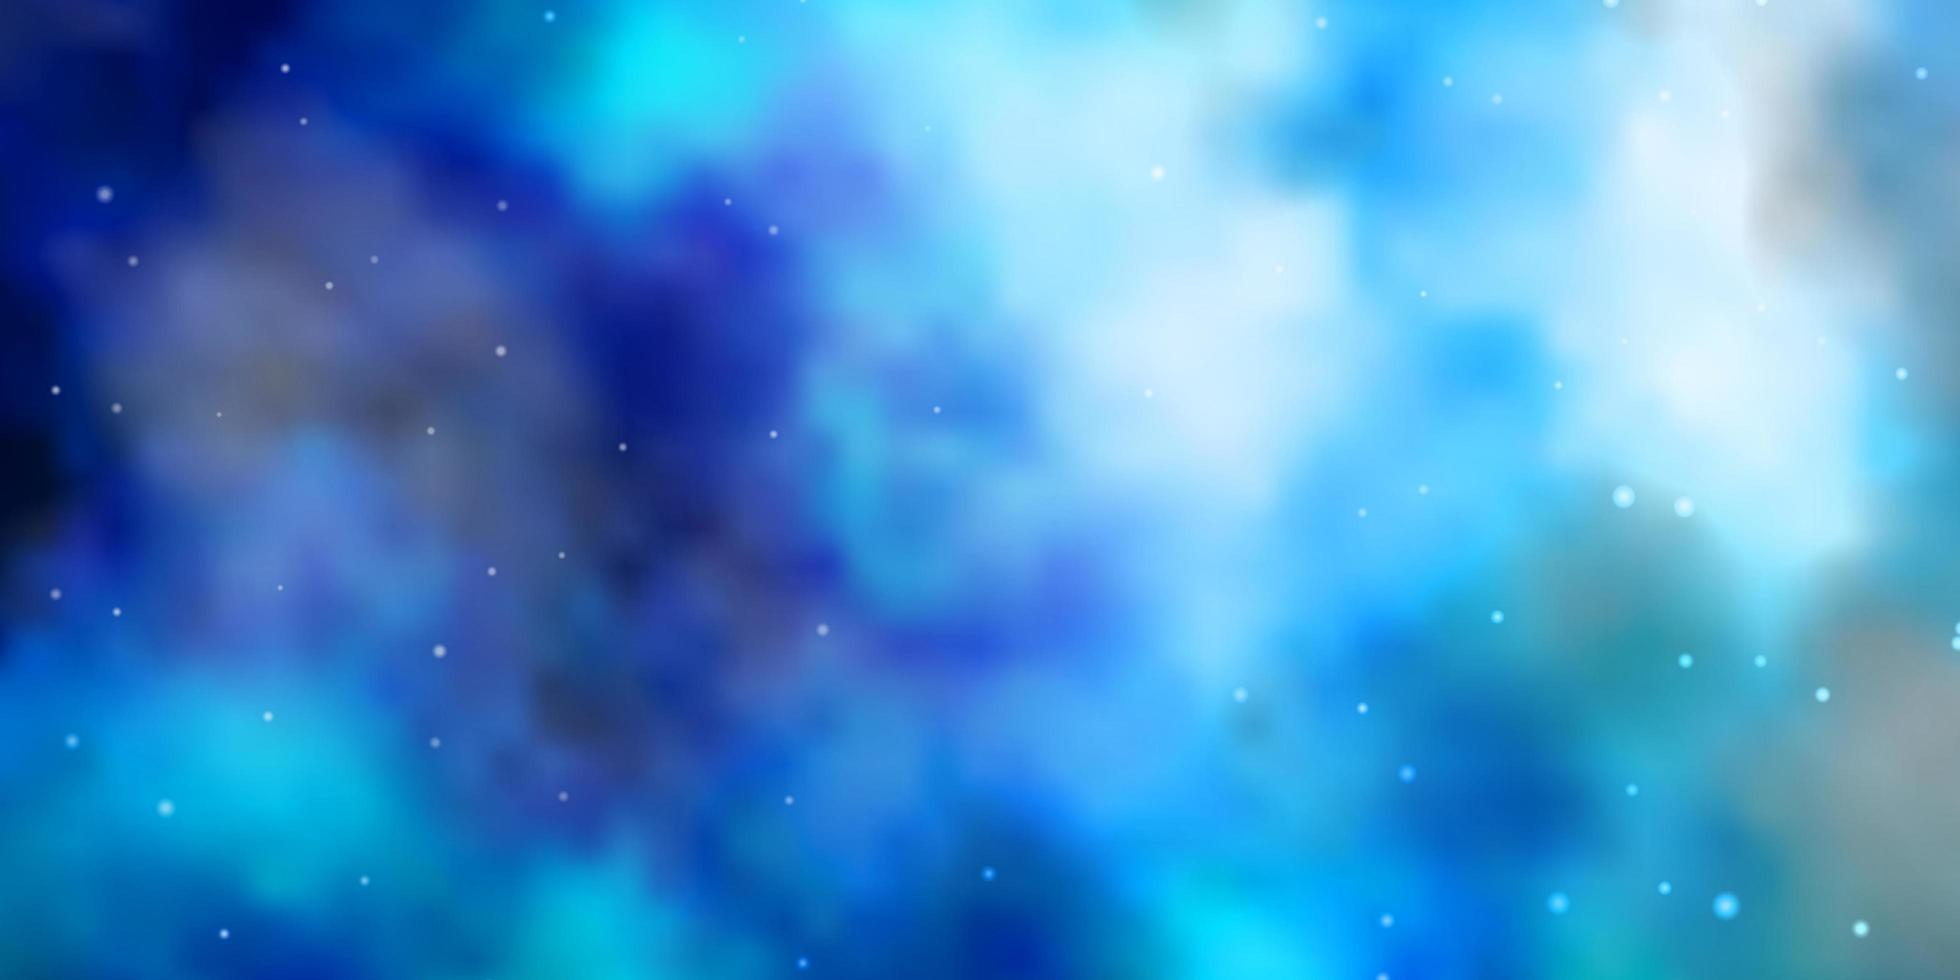 Light BLUE vector pattern with abstract stars.